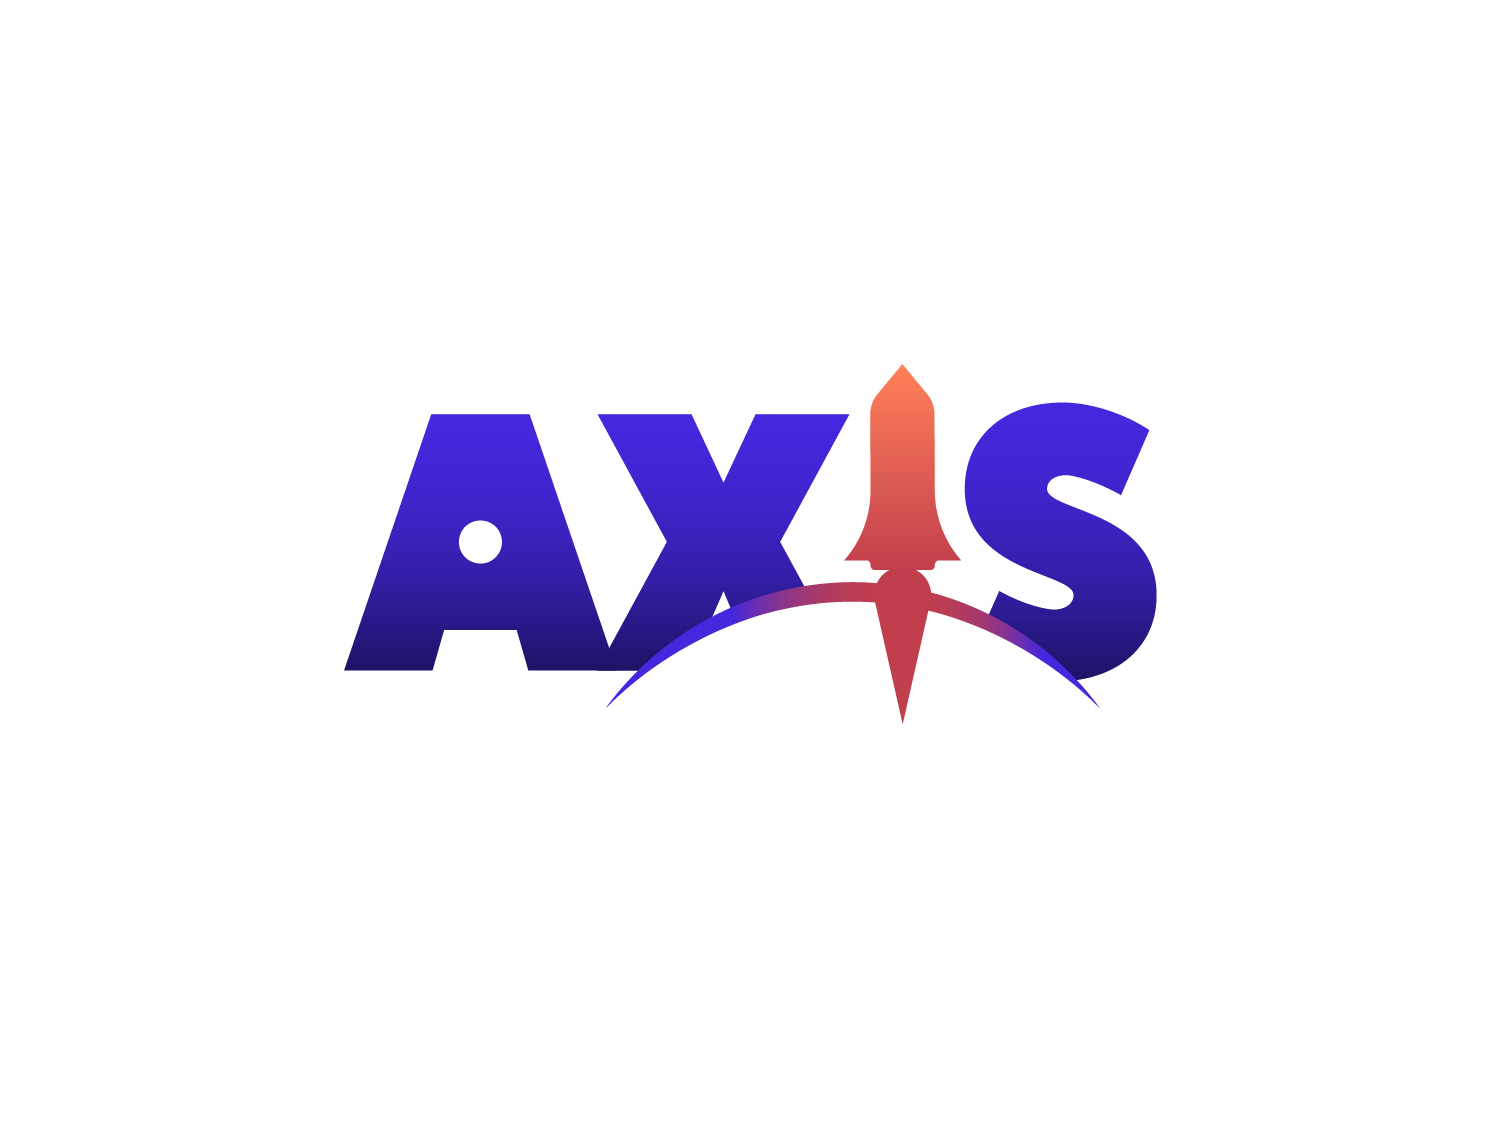 Axis logo by Mark Stluka on Dribbble.